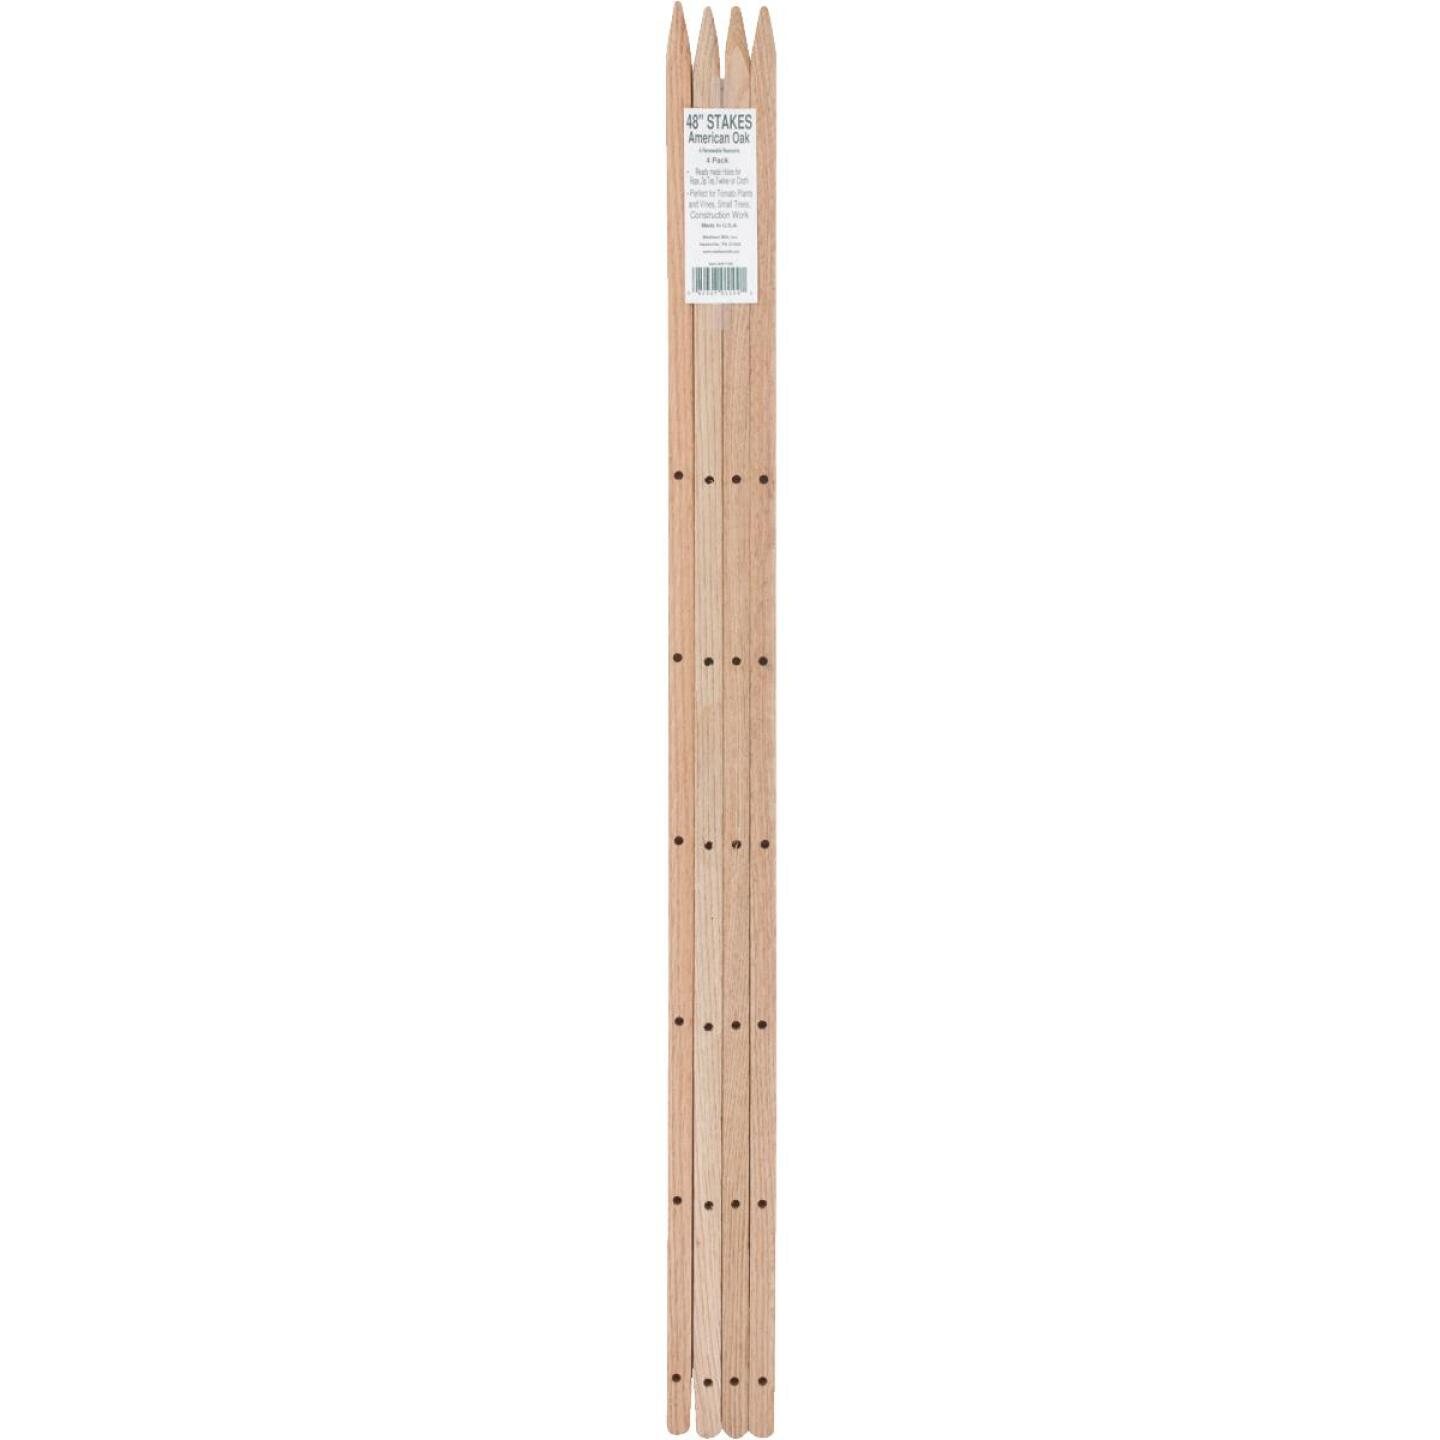 Madison Mill 48 In. Oak Wood Plant Stake (4-Pack) Image 2